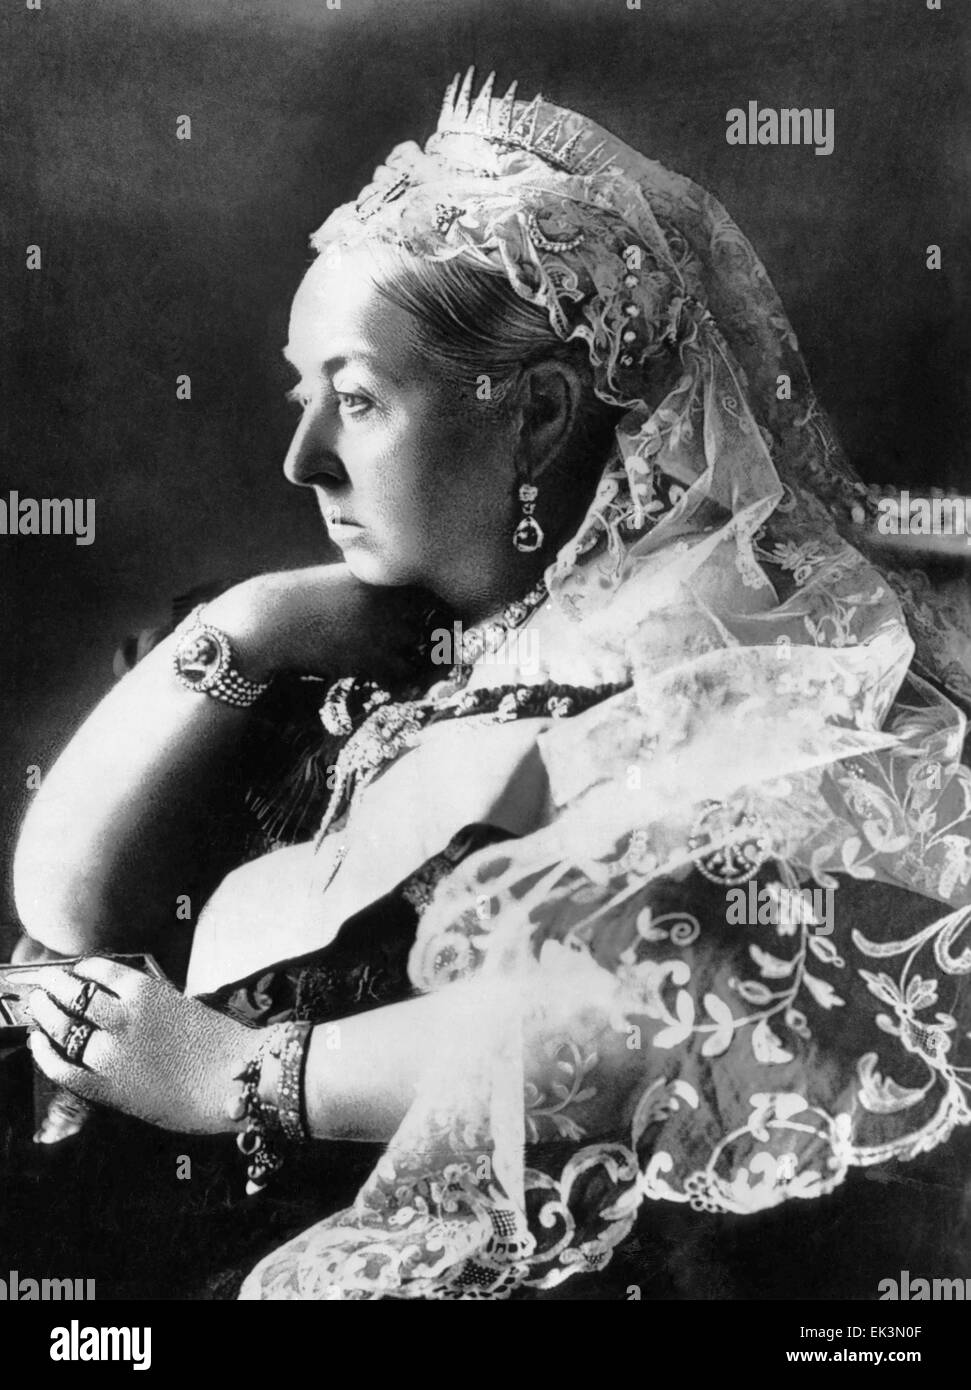 Queen Victoria, of the United Kingdom, Portrait, circa 1890 - Stock Image